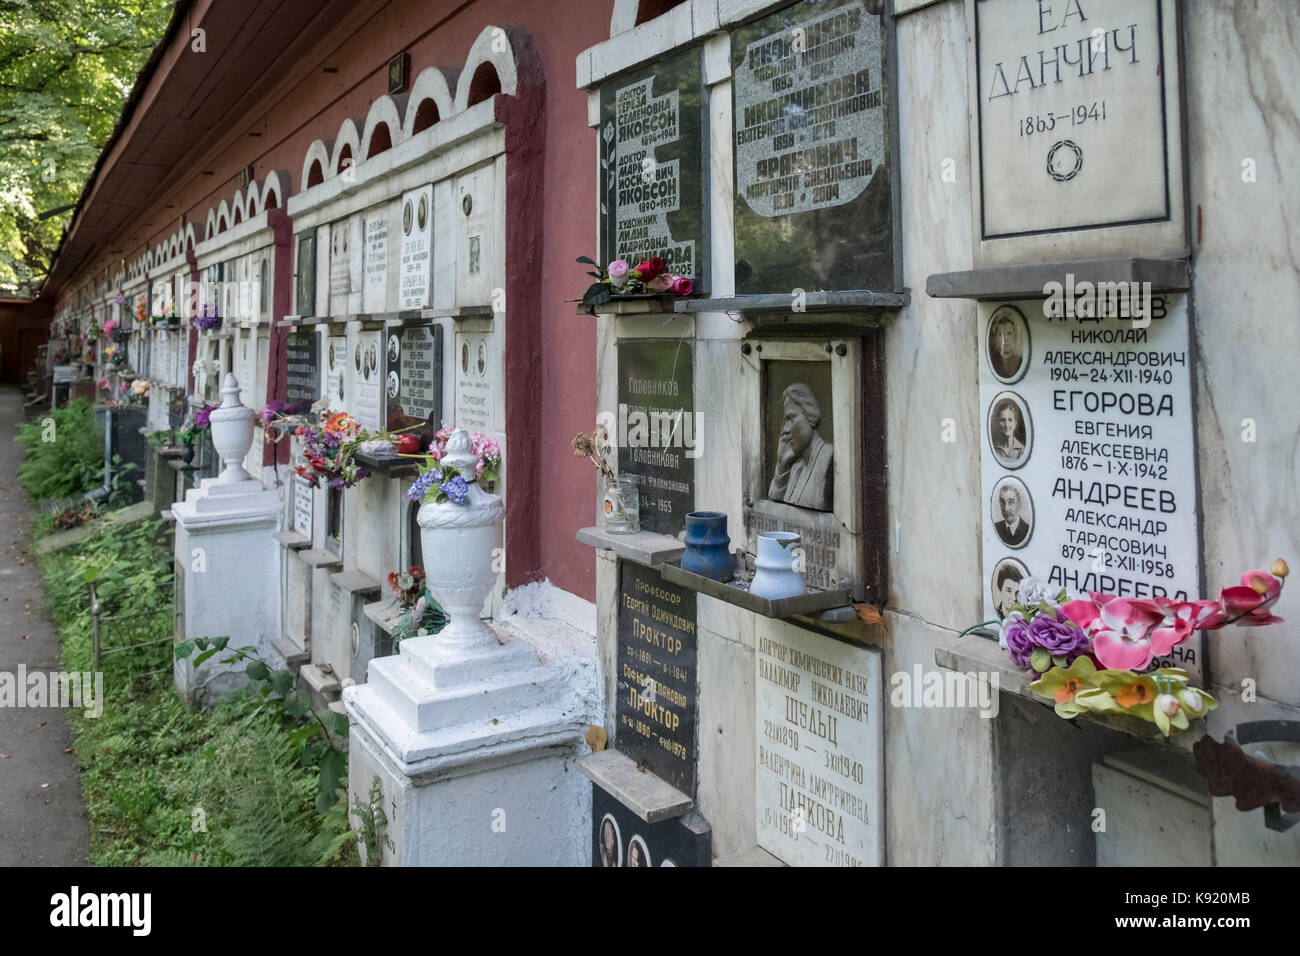 Columbarium and memorials to notable Russians buried at the famous Novodevichy Cemetery, Moscow, Russia. - Stock Image